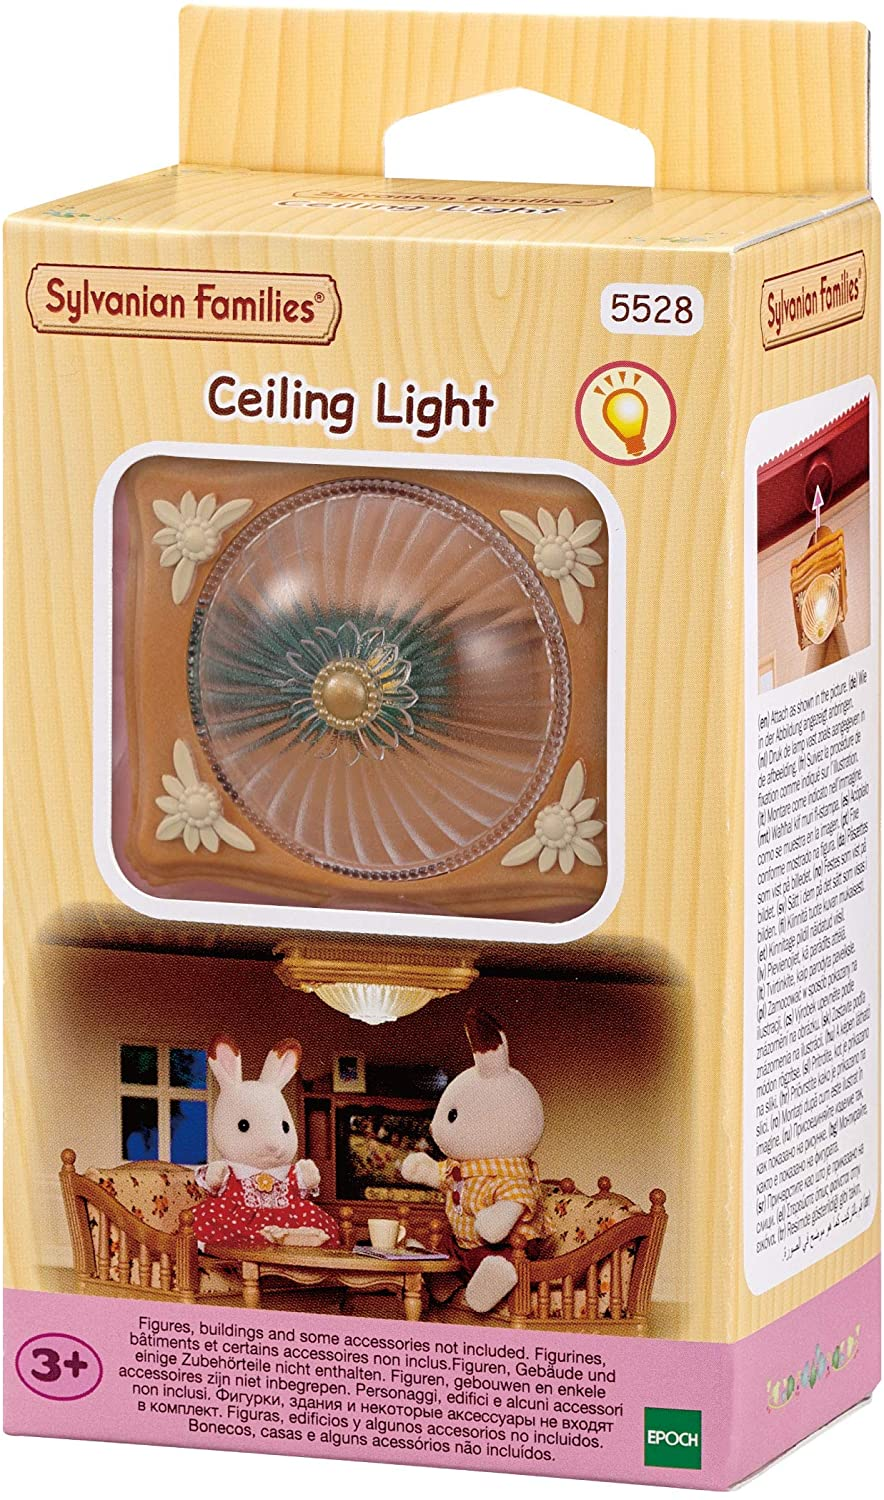 Sylvanian Families 5528 Ceiling Light Doll Furniture and Accessories